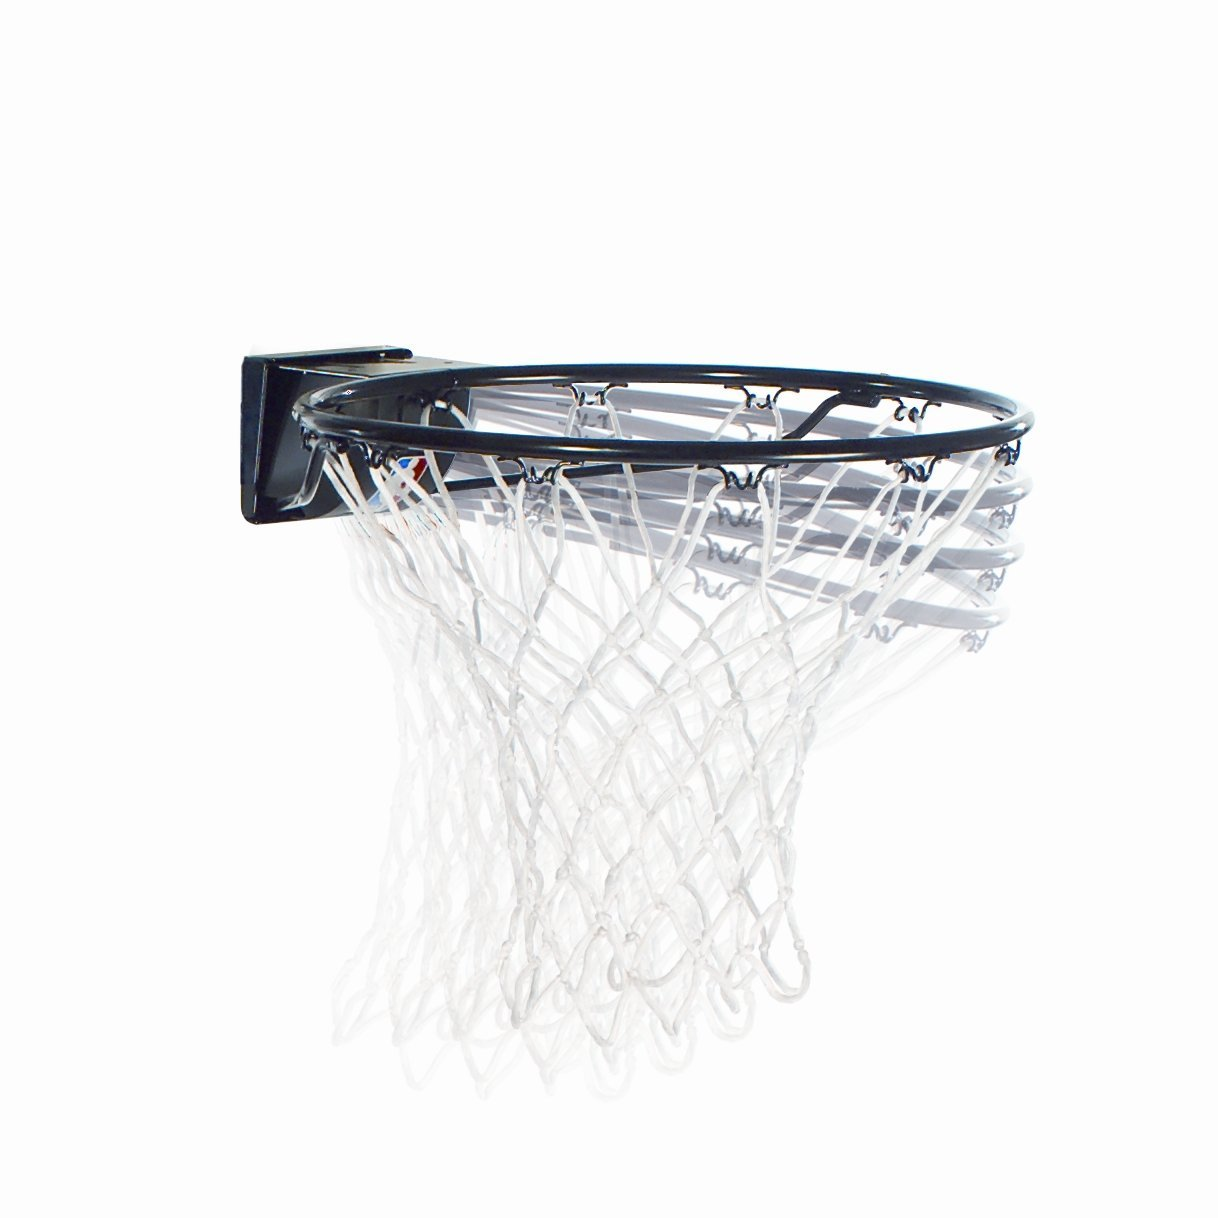 Spalding Huffy Pro Slam Basketball Rim